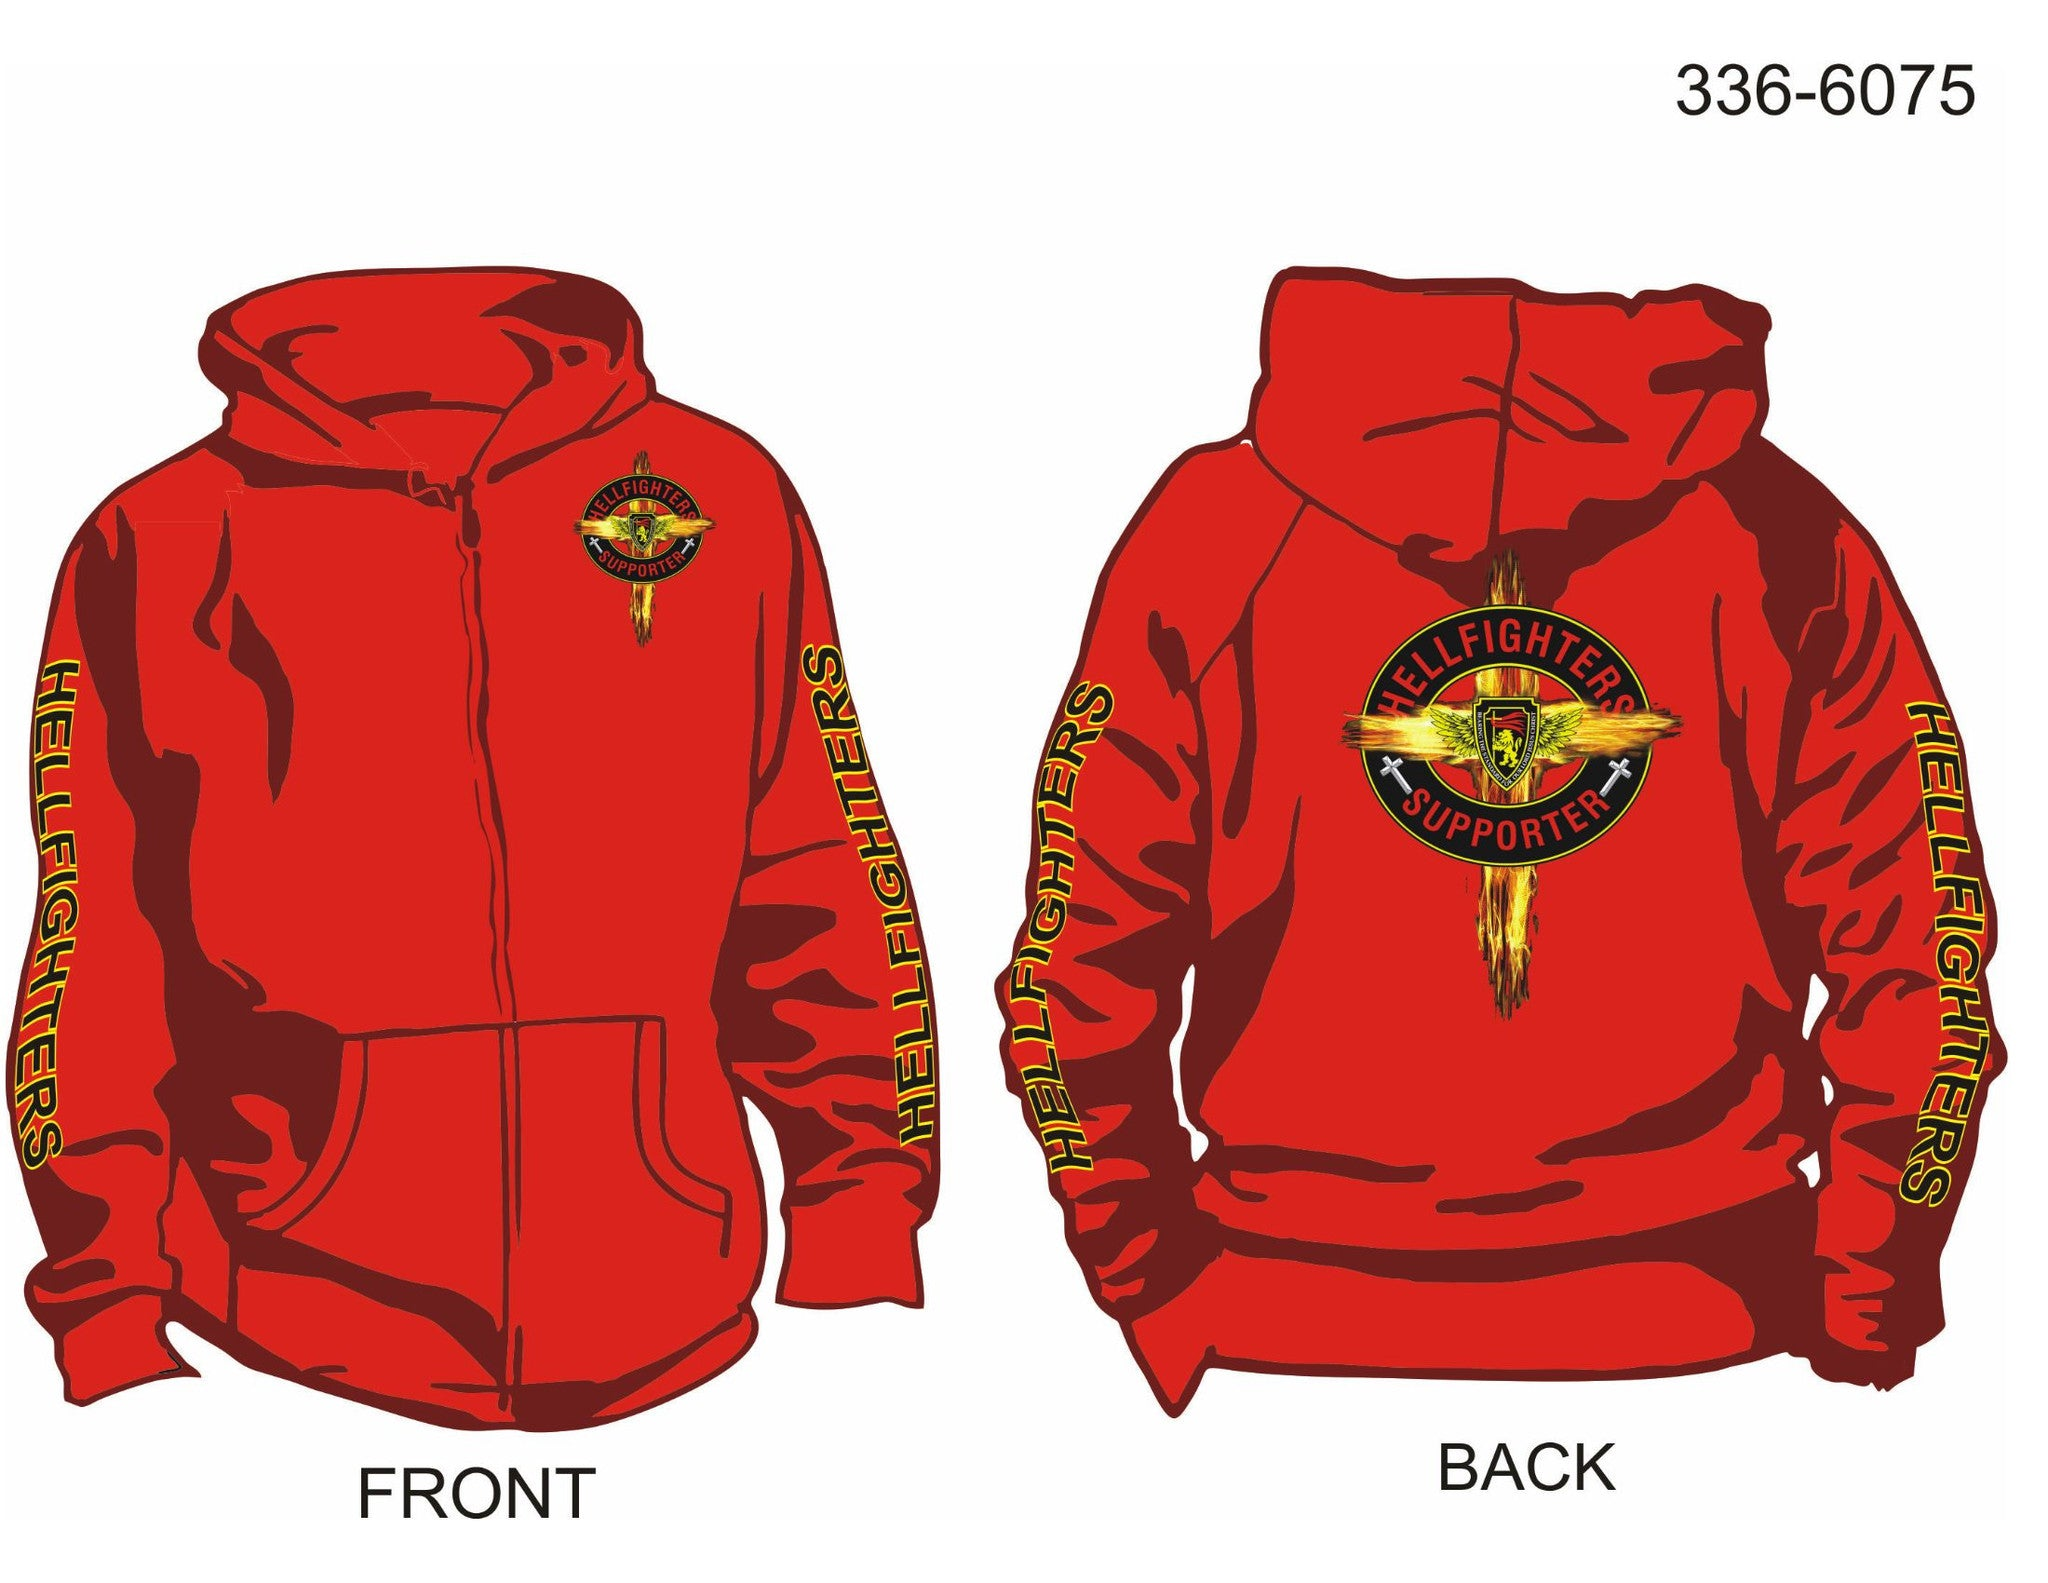 Hoodie, Long Sleeve, Hellfighter Supporter w/Cross (red, HF sleeves, zip-up)